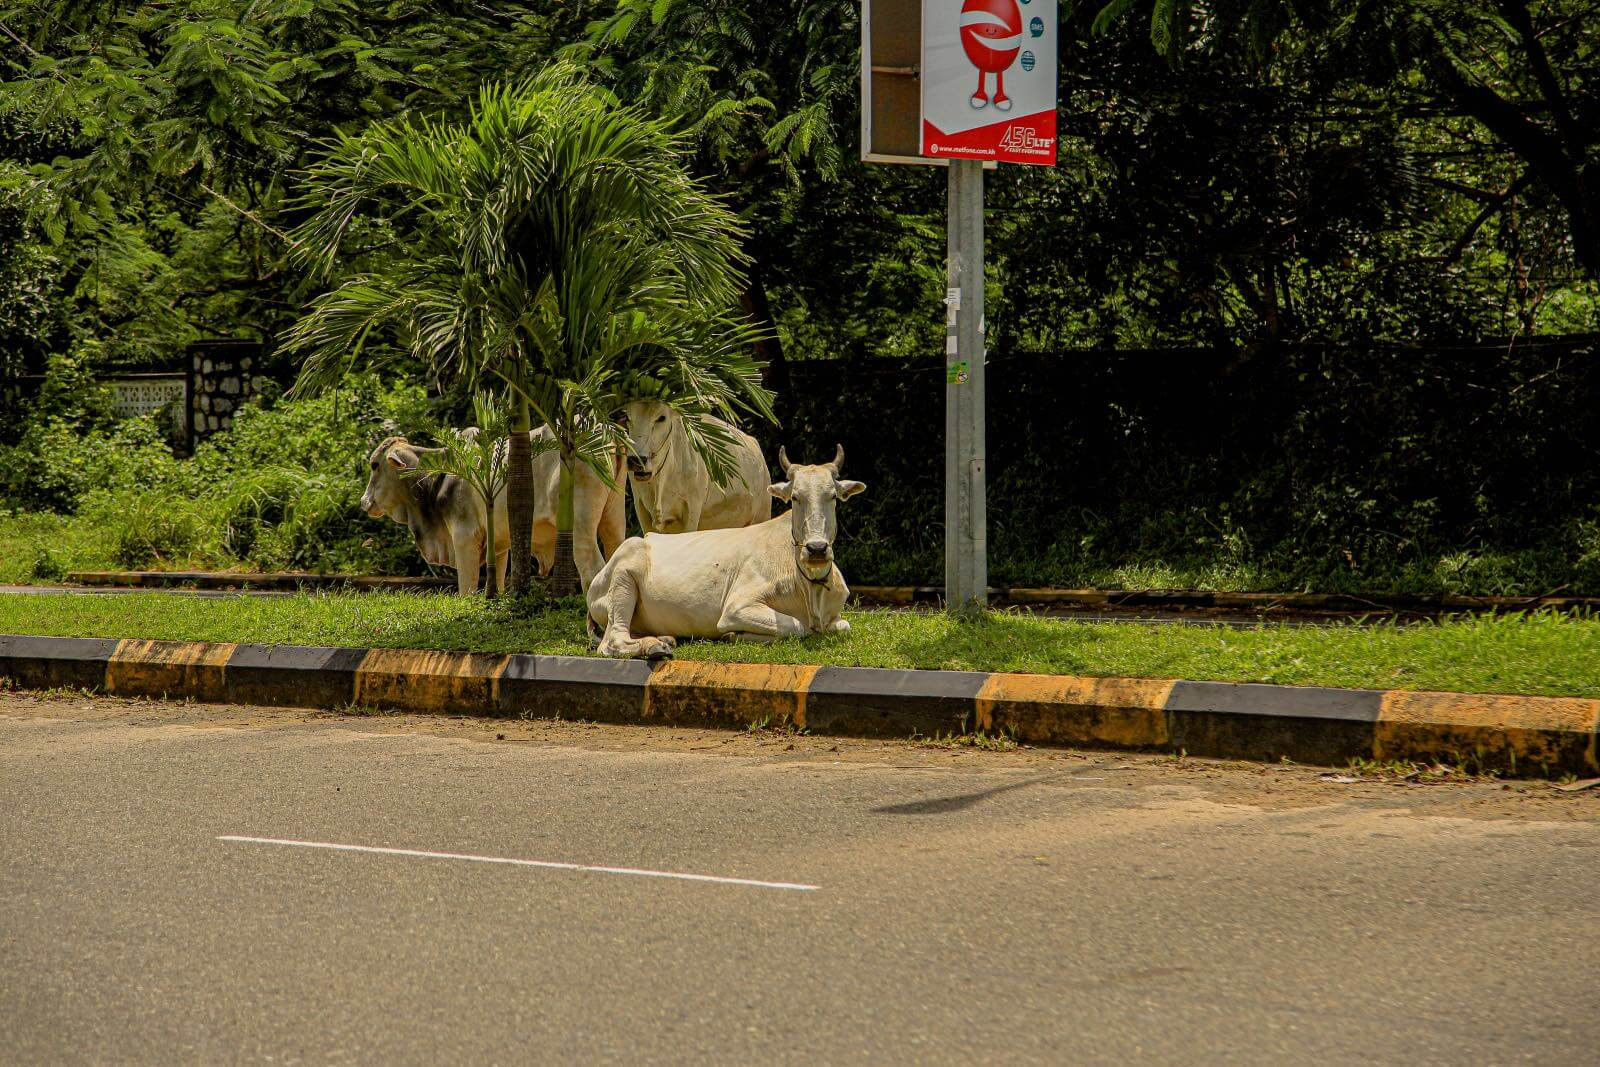 Cow on the side of the road in Kampot, Cambodia